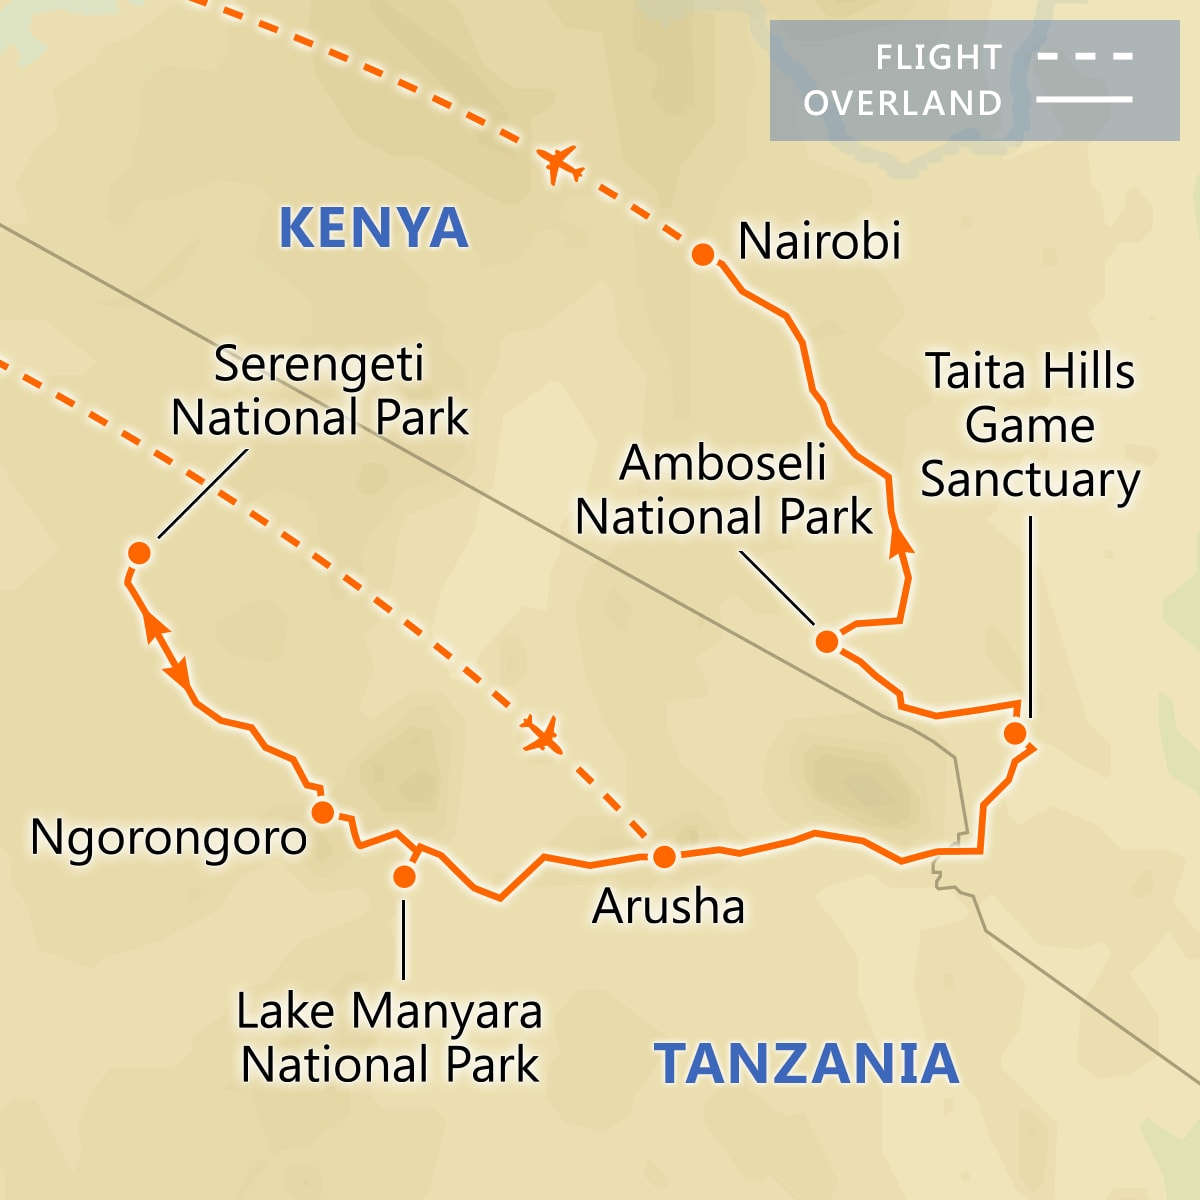 Treasures of Tanzania & Kenya map